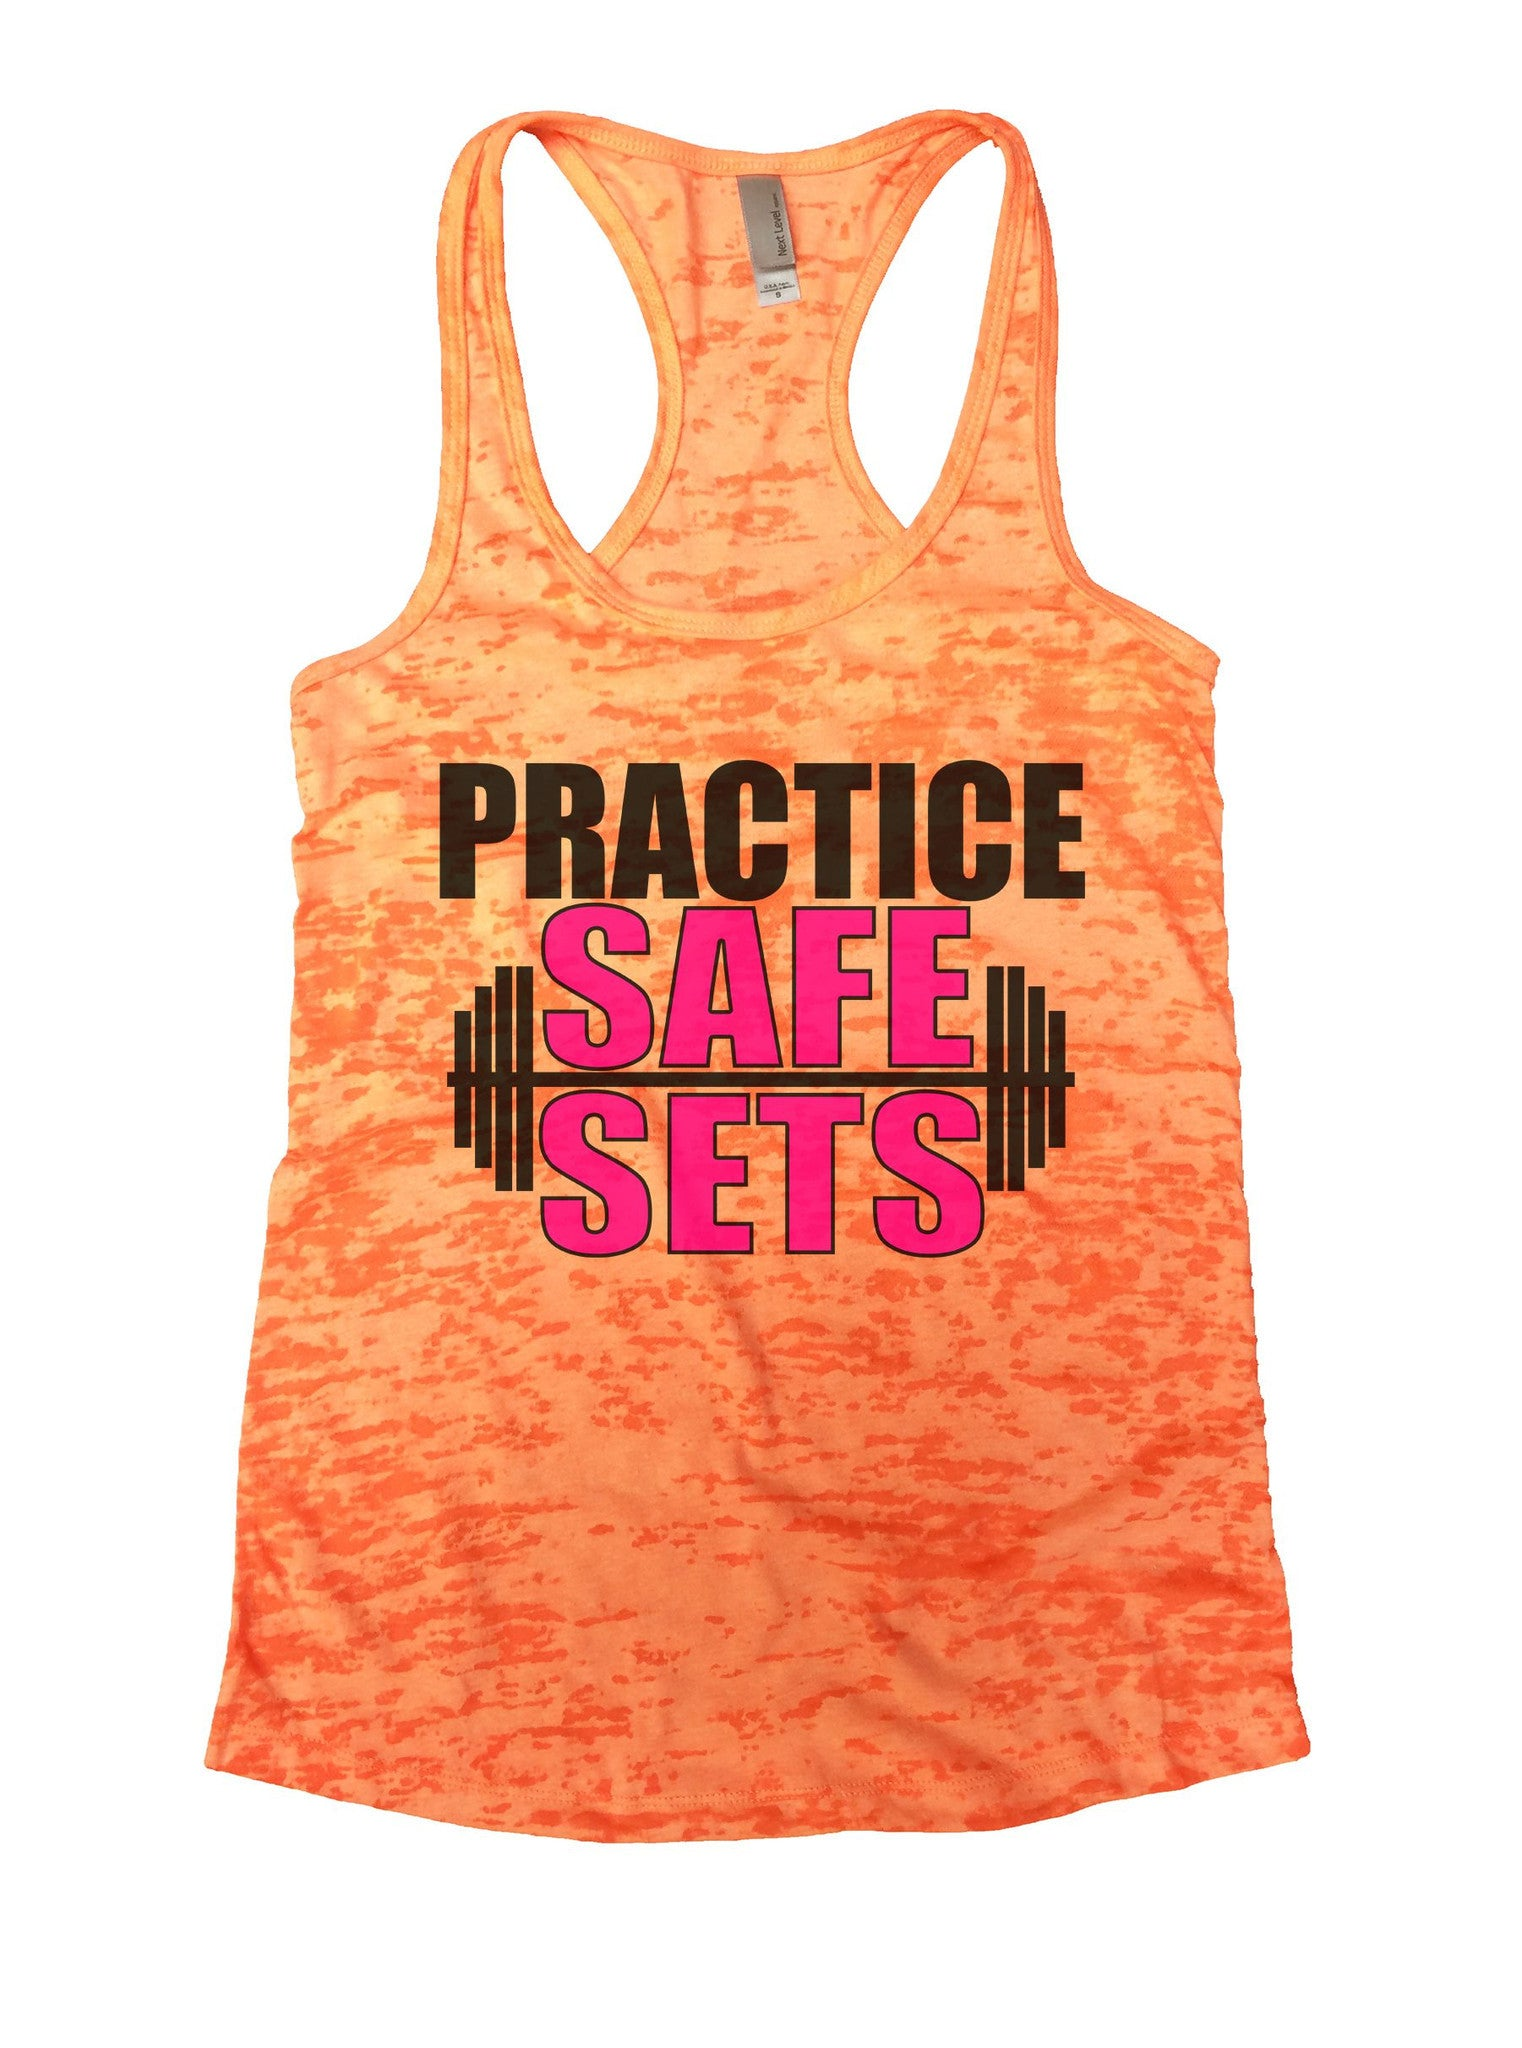 Practice Safe Sets Burnout Tank Top By BurnoutTankTops.com - 1124 - Funny Shirts Tank Tops Burnouts and Triblends  - 4